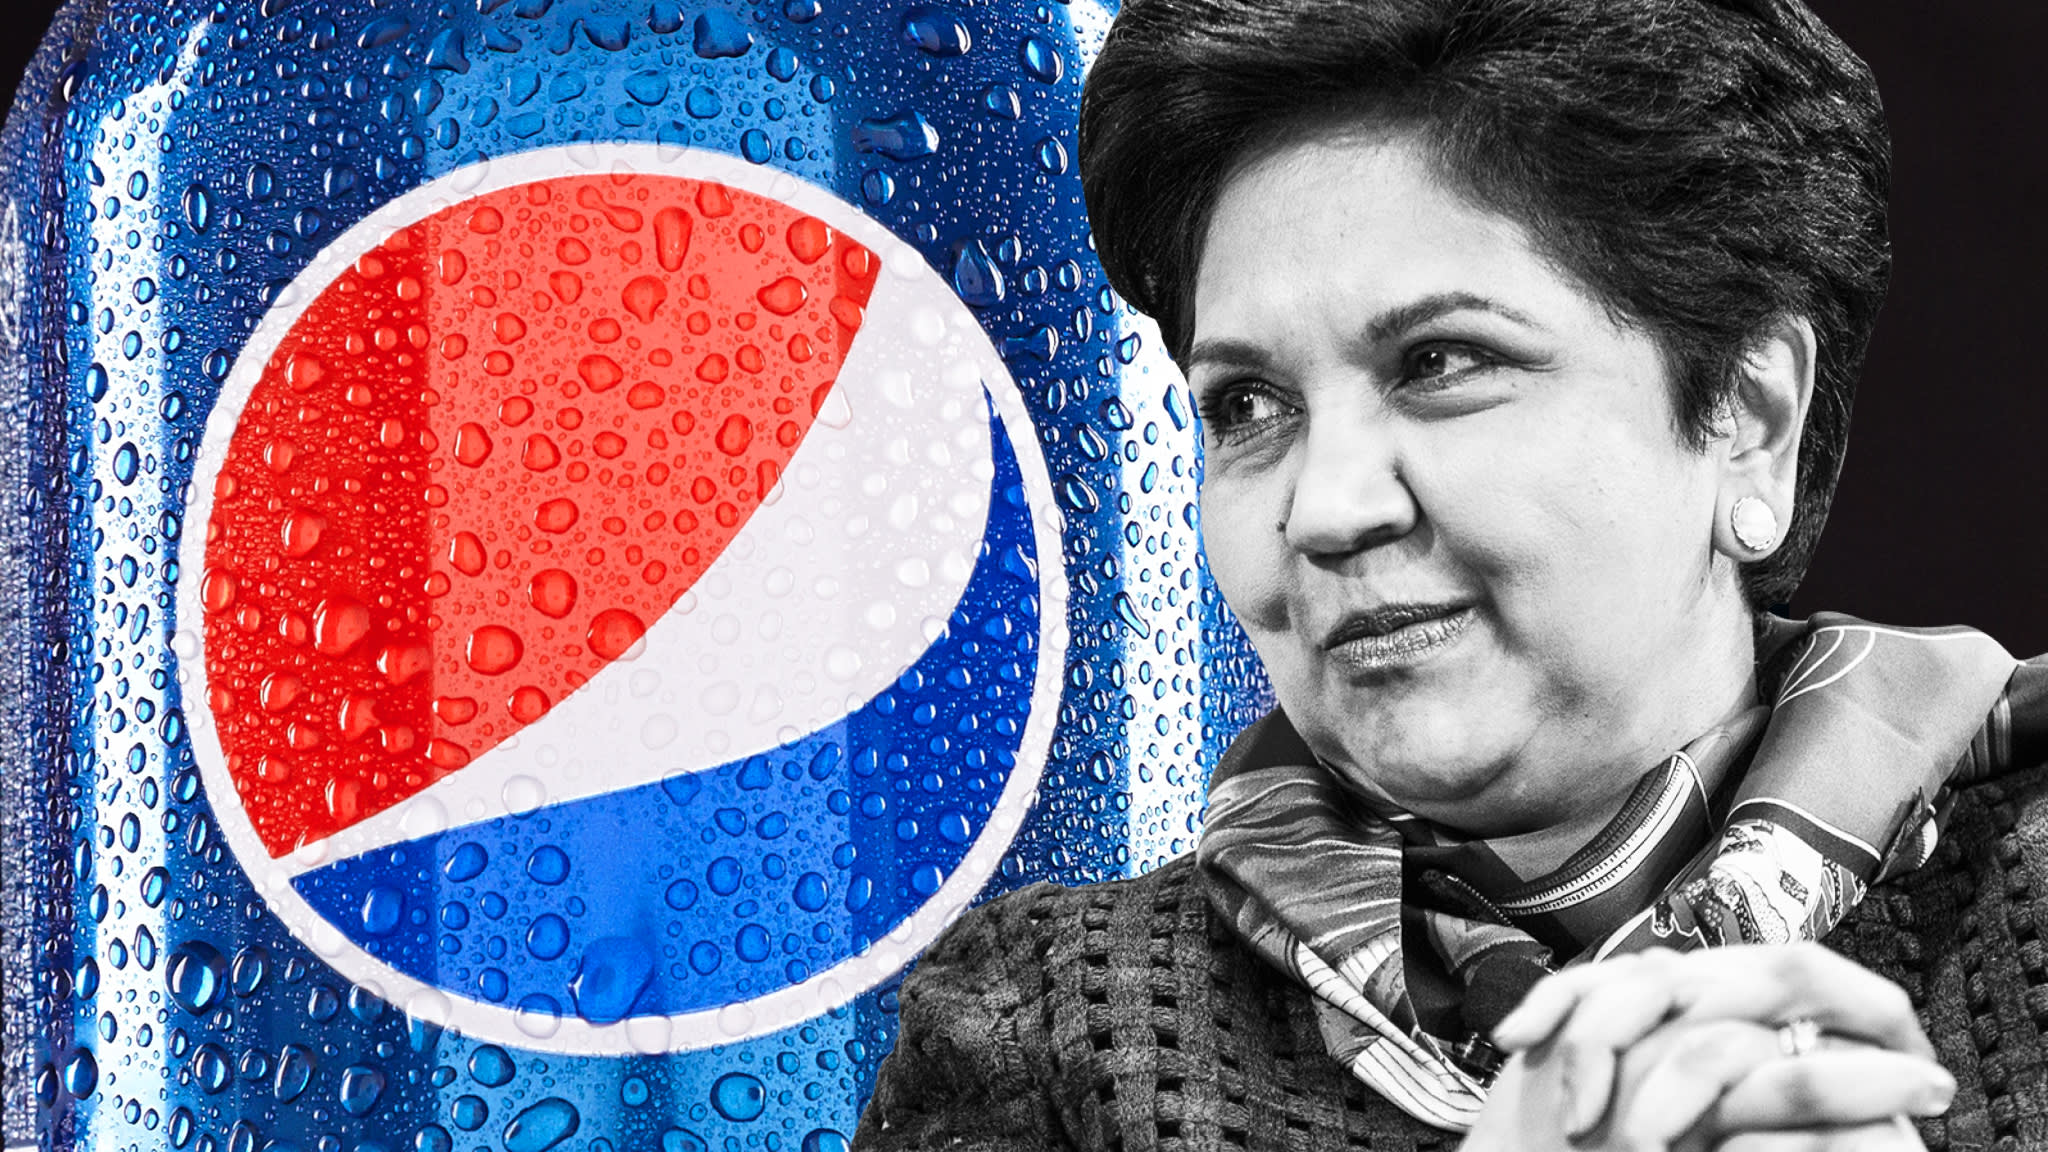 Nooyi leaves Pepsi after trying to shape healthier future